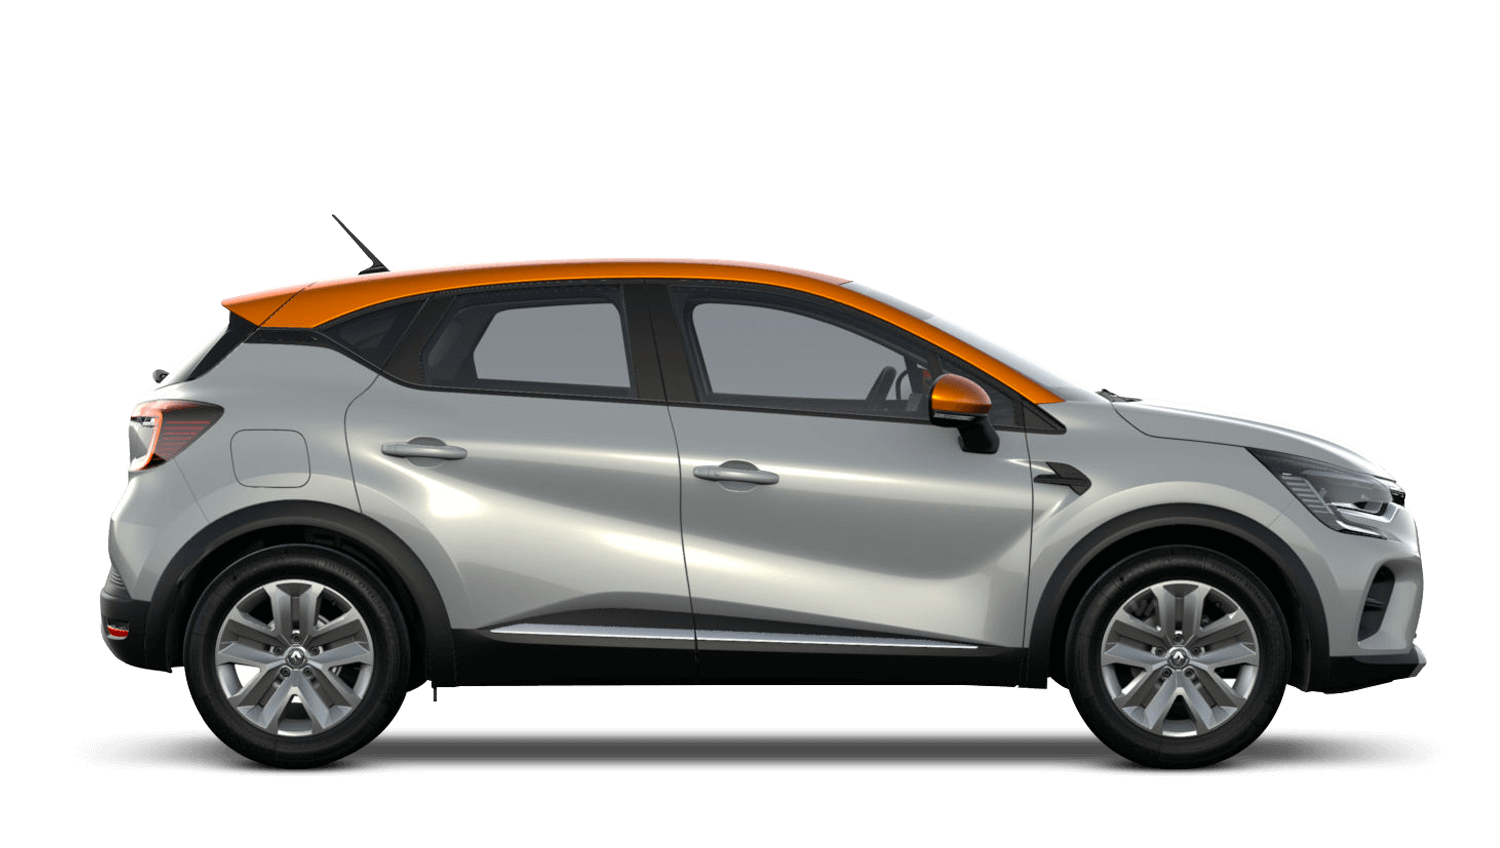 Highland Grey with Desert Orange Roof All-New Renault CAPTUR